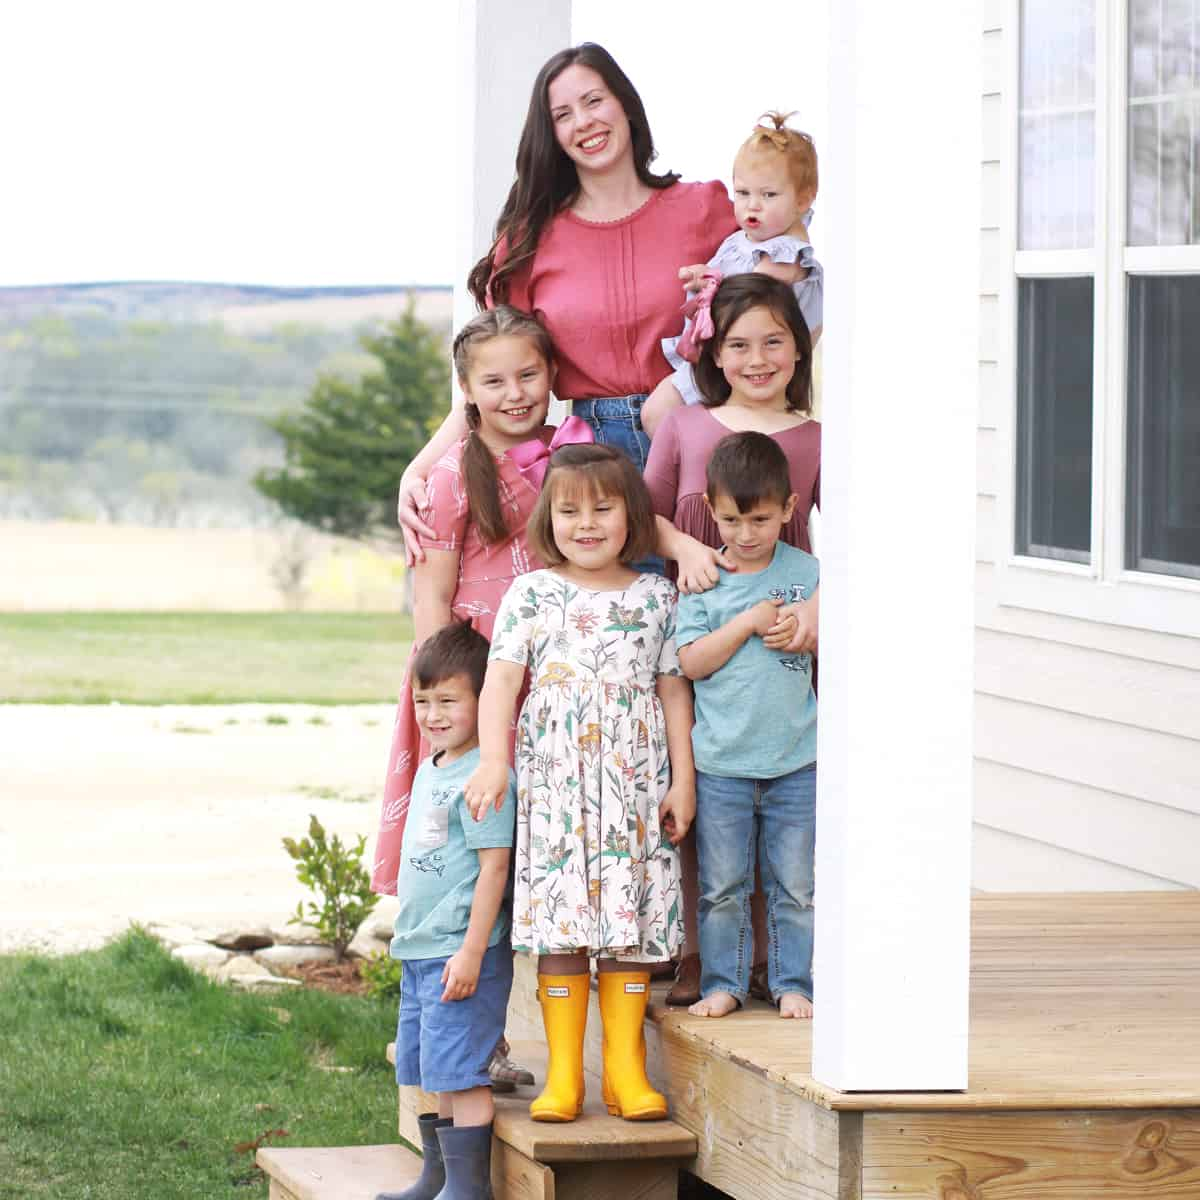 a large family with 6 kids on a front porch posed for a family photo